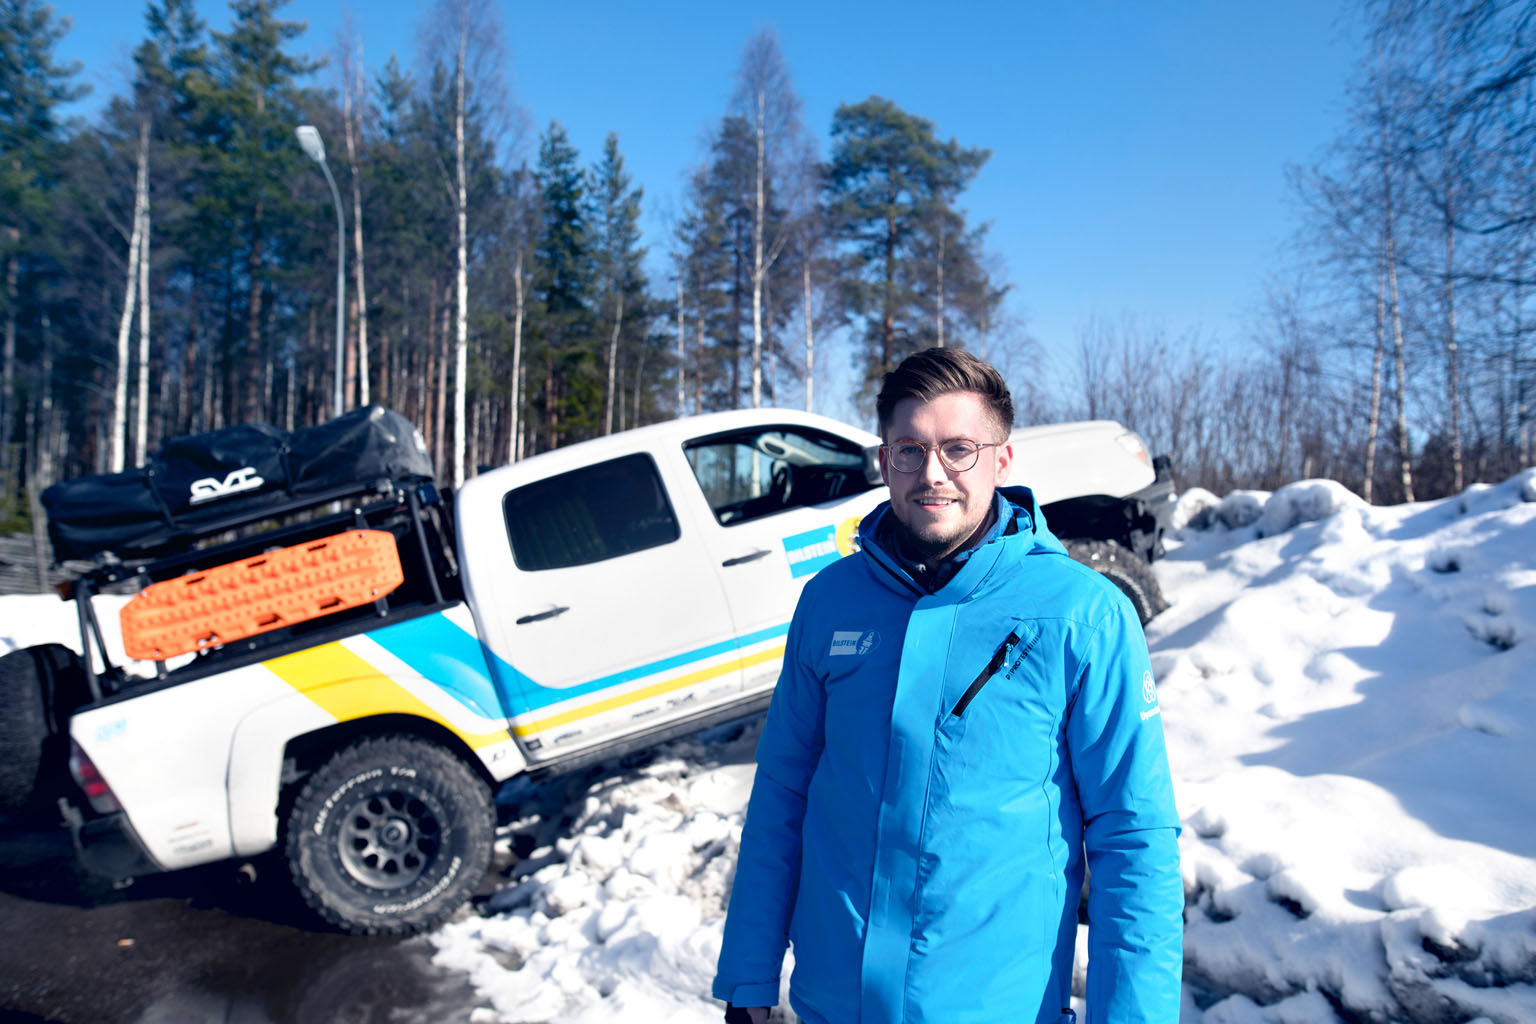 Technology and Innovation Manager Julian Beckmann is always up to date when it comes to present and future automotive solutions. In Sweden, he tests thyssenkrupp components on snow and ice.